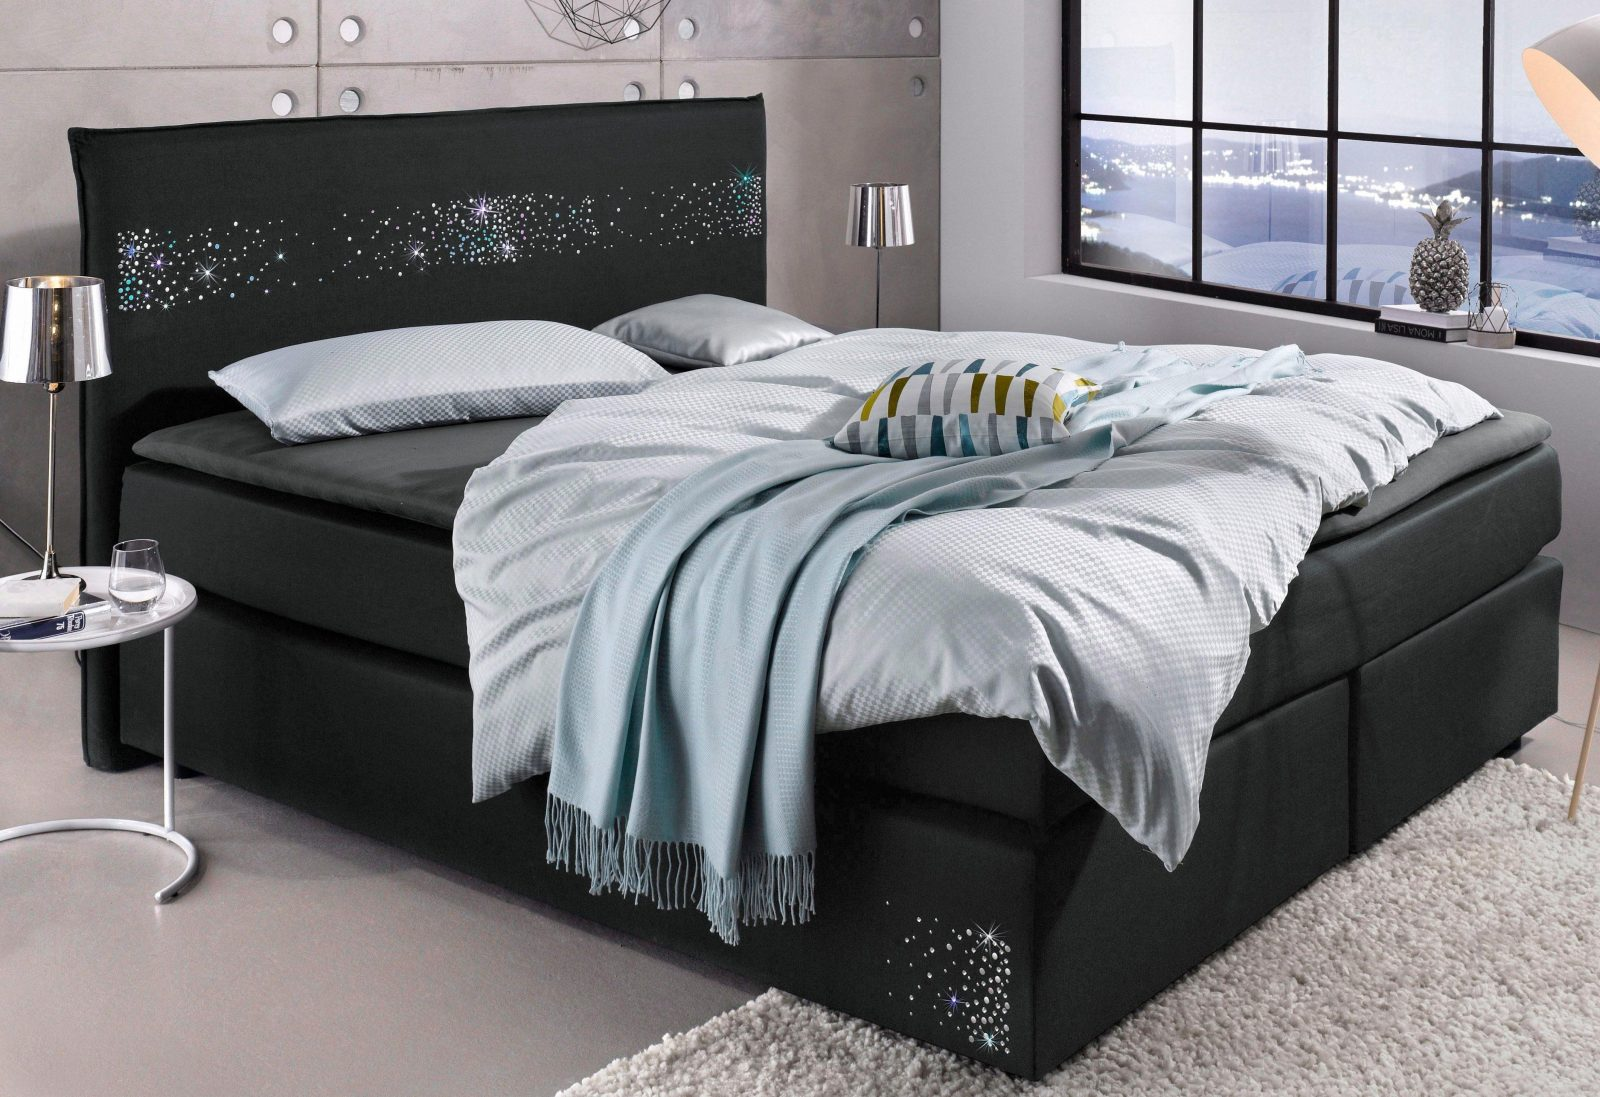 otto boxspringbett mit bettkasten haus design ideen. Black Bedroom Furniture Sets. Home Design Ideas